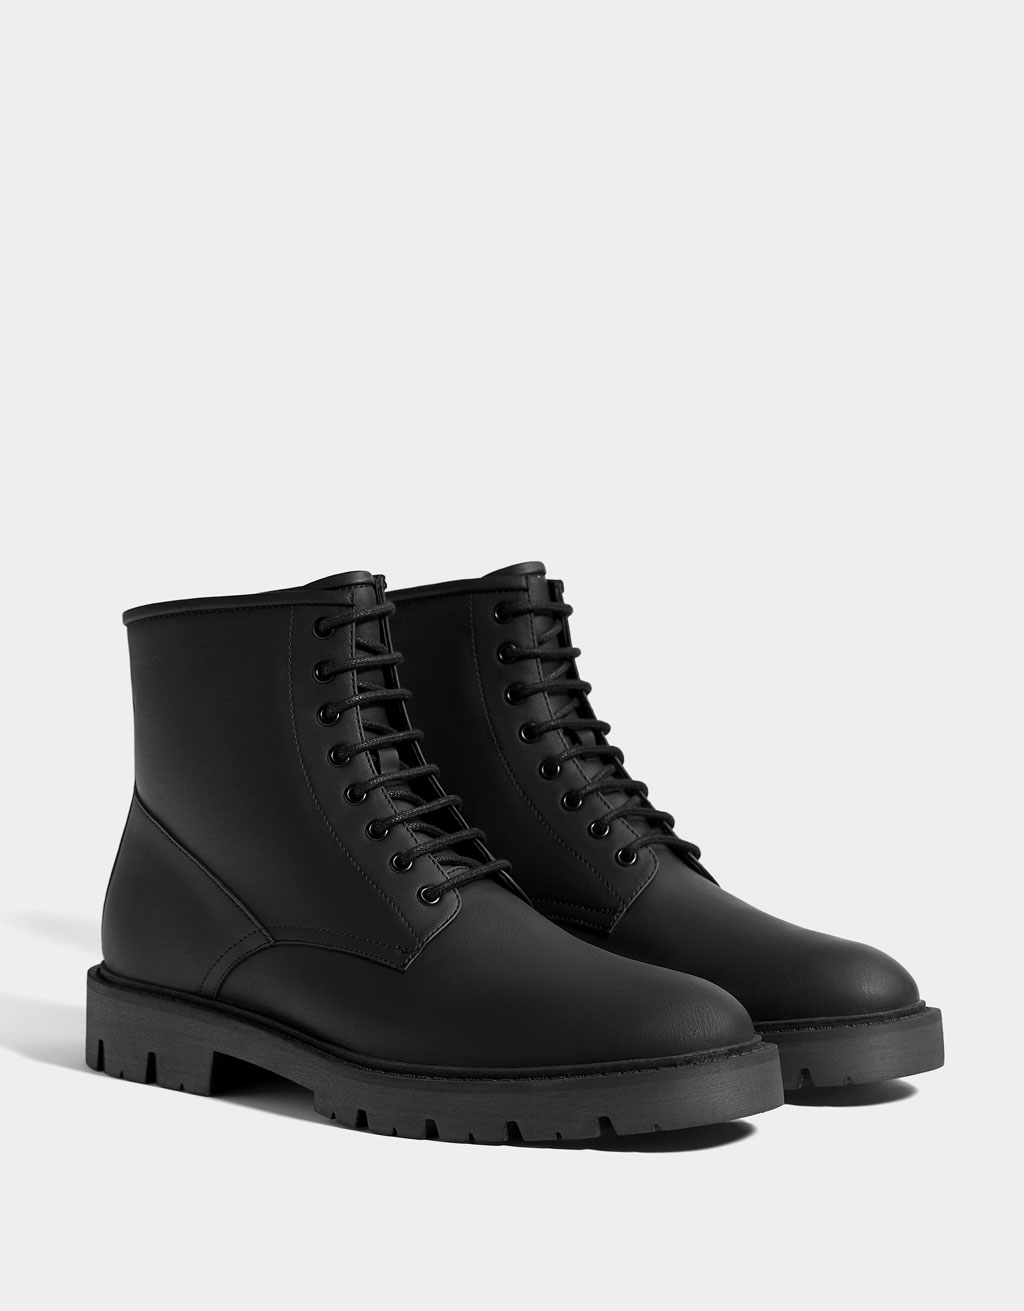 Men's lined boots